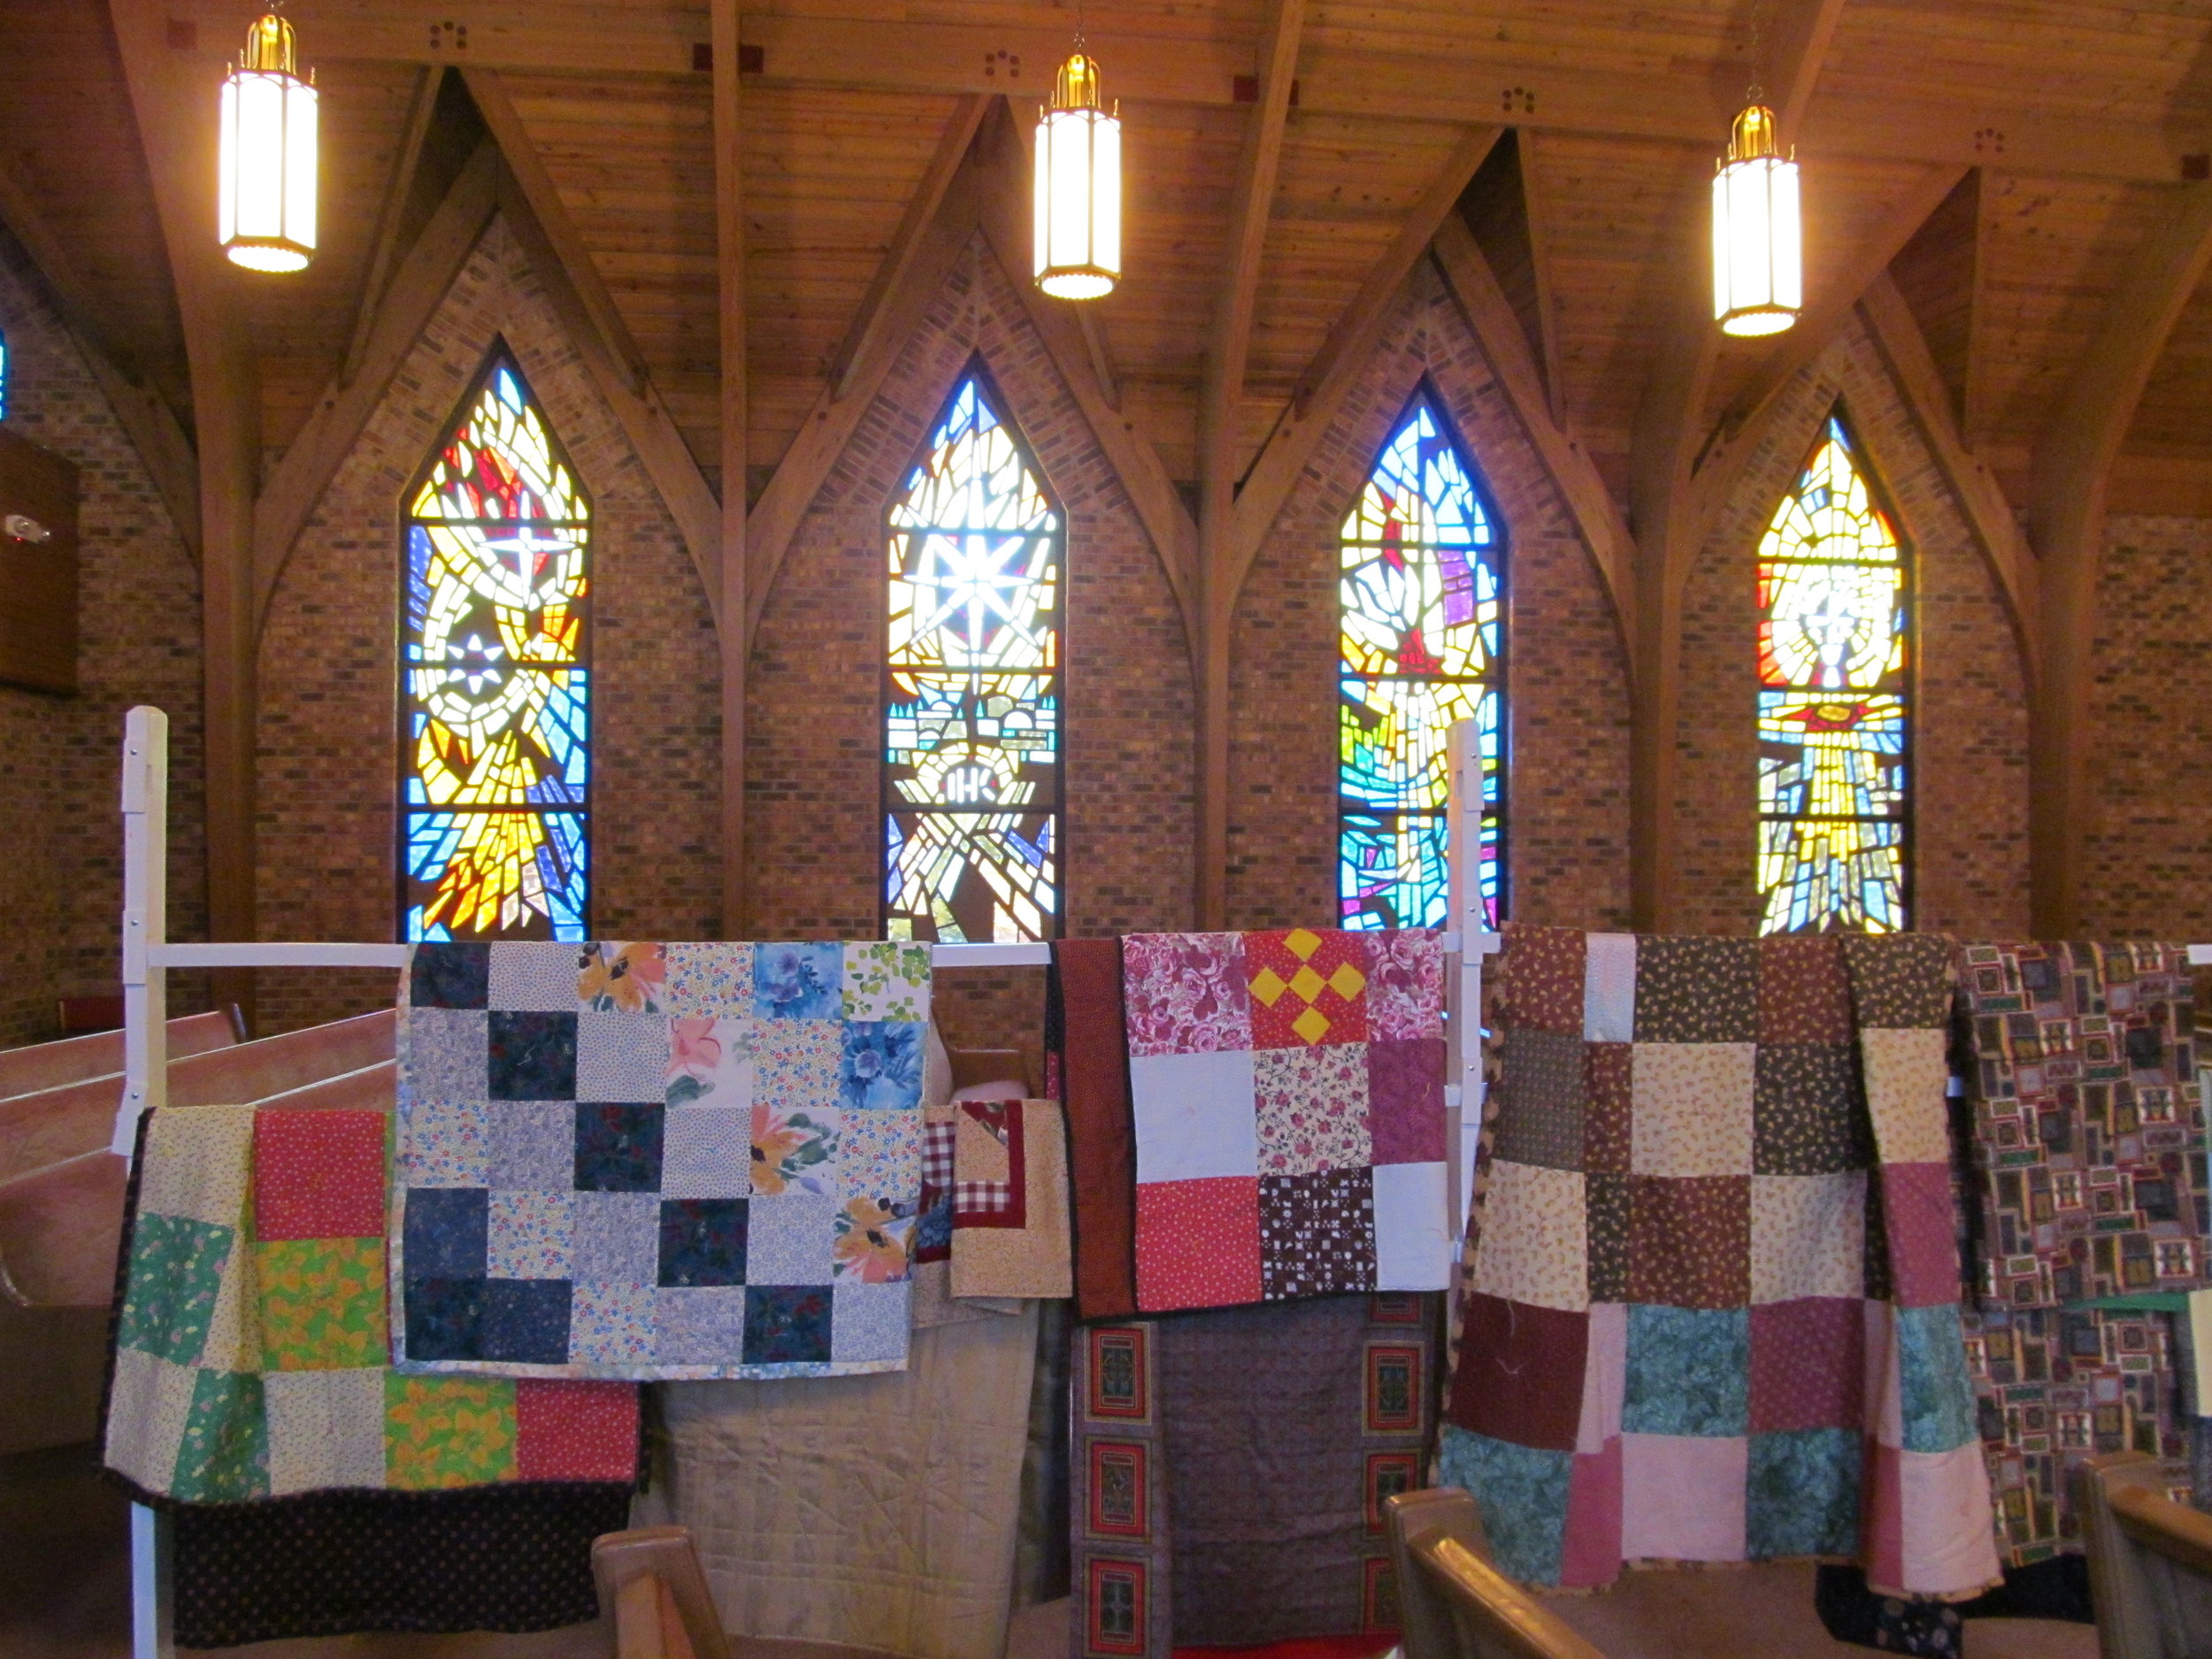 Quilts Made by OSLC Members for LWR